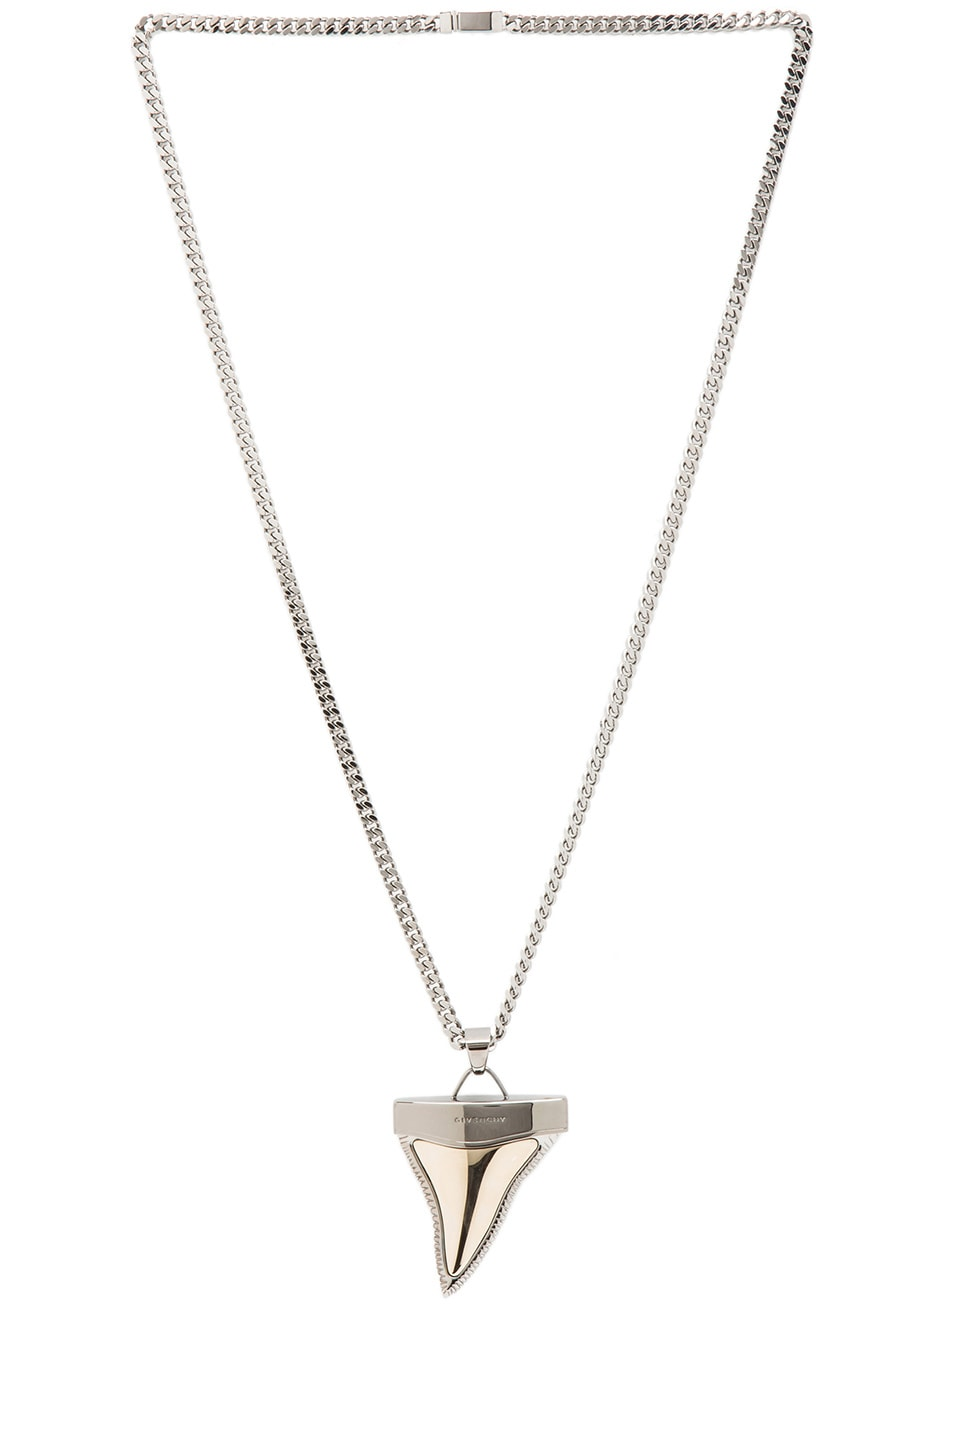 c format s megalodon e l a t shark o shop tooth i necklace v pendant